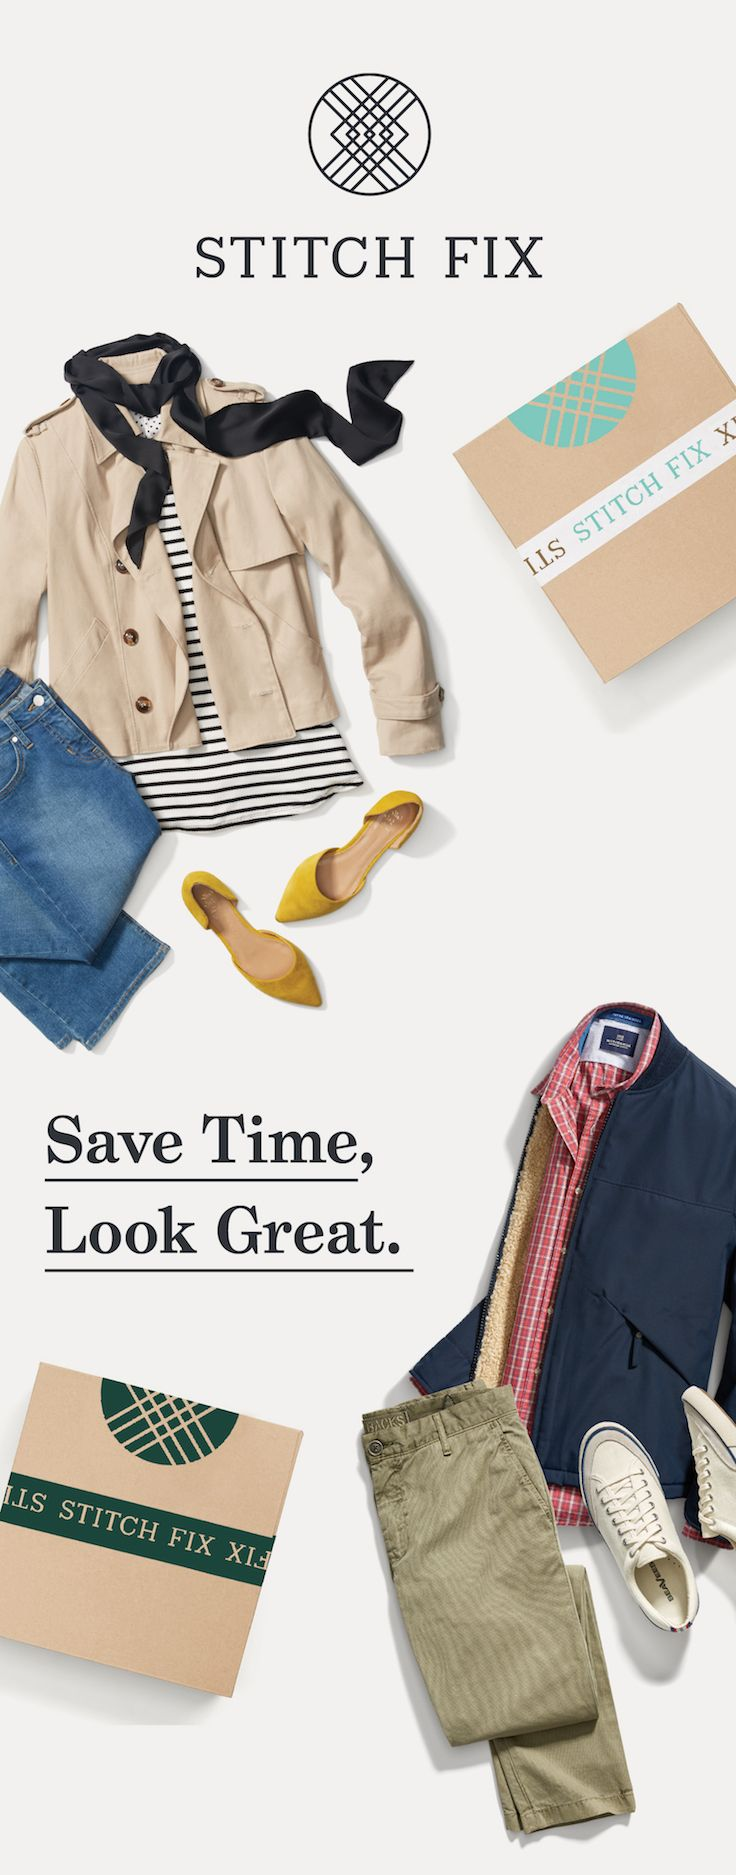 You've got to try this! Stitch Fix is the personal styling service for men